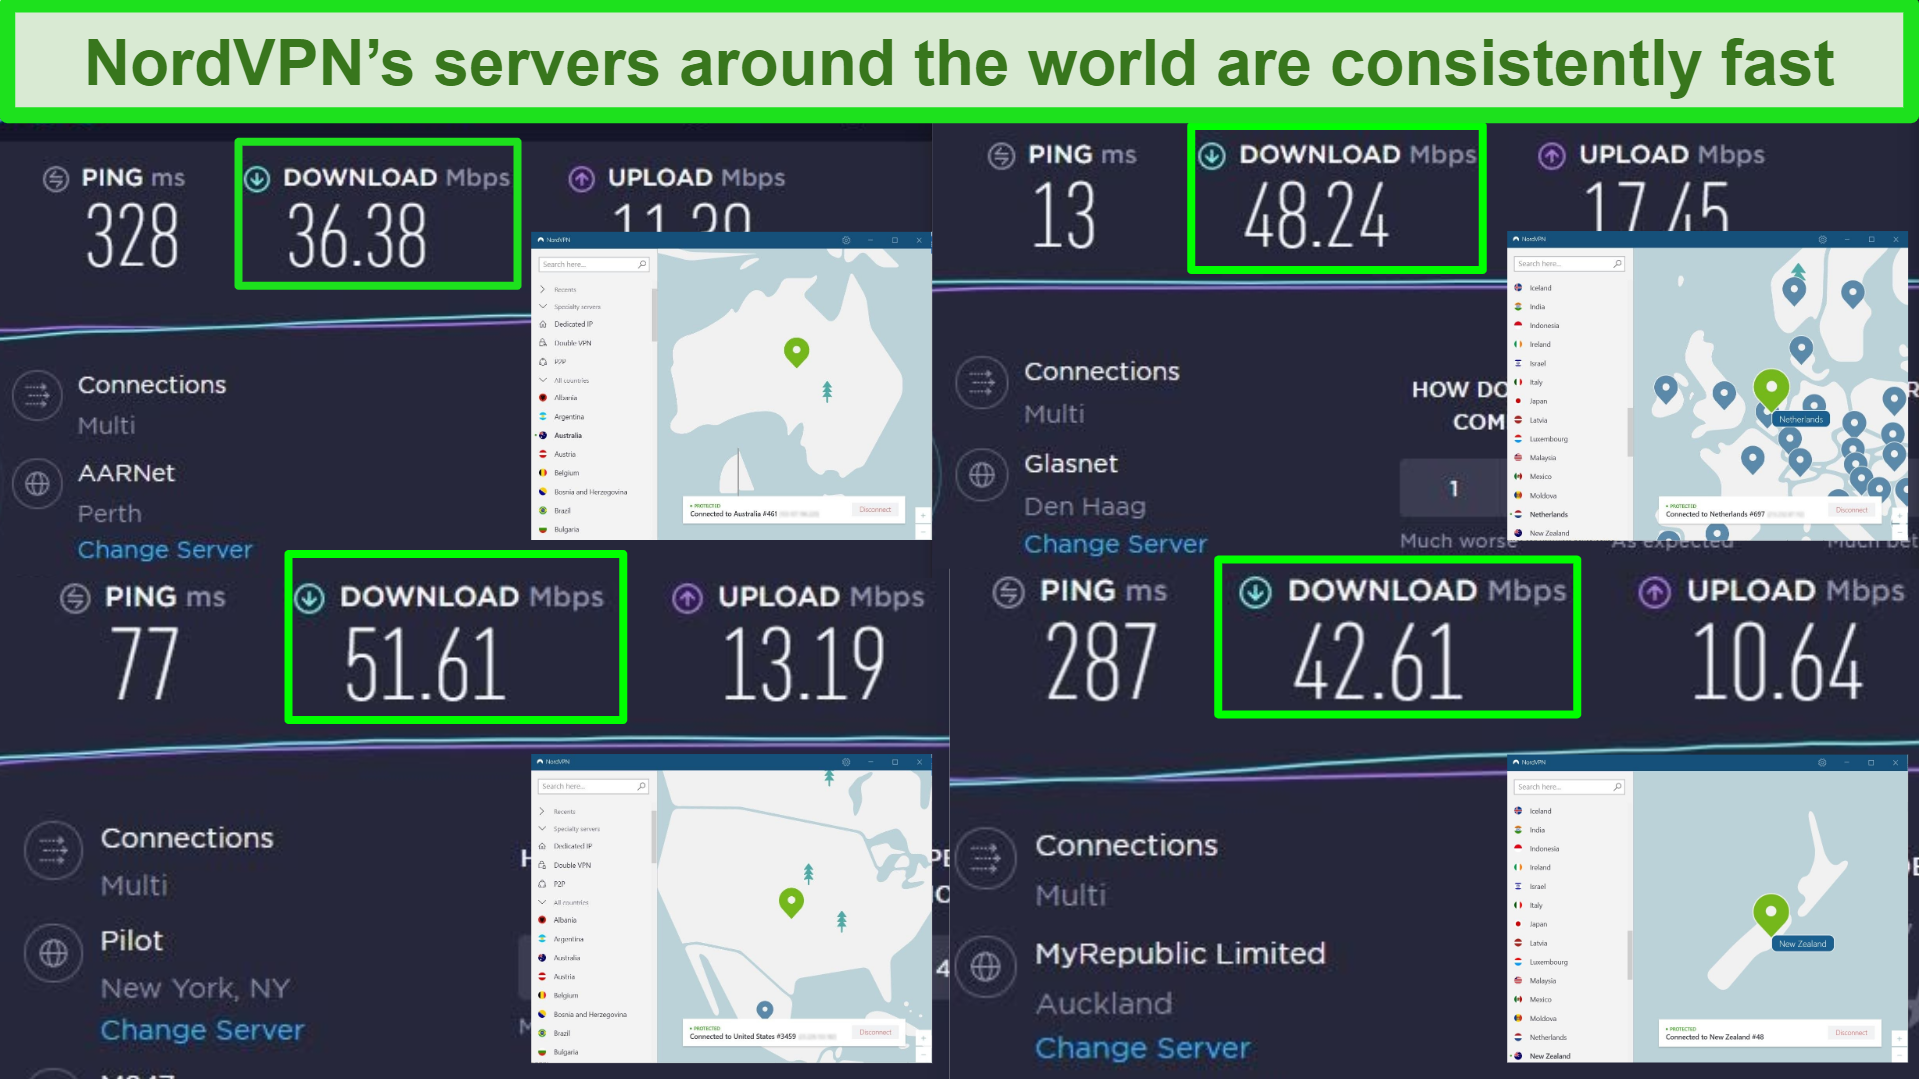 Screenshots of Ookla speed tests with NordVPN connected to different servers